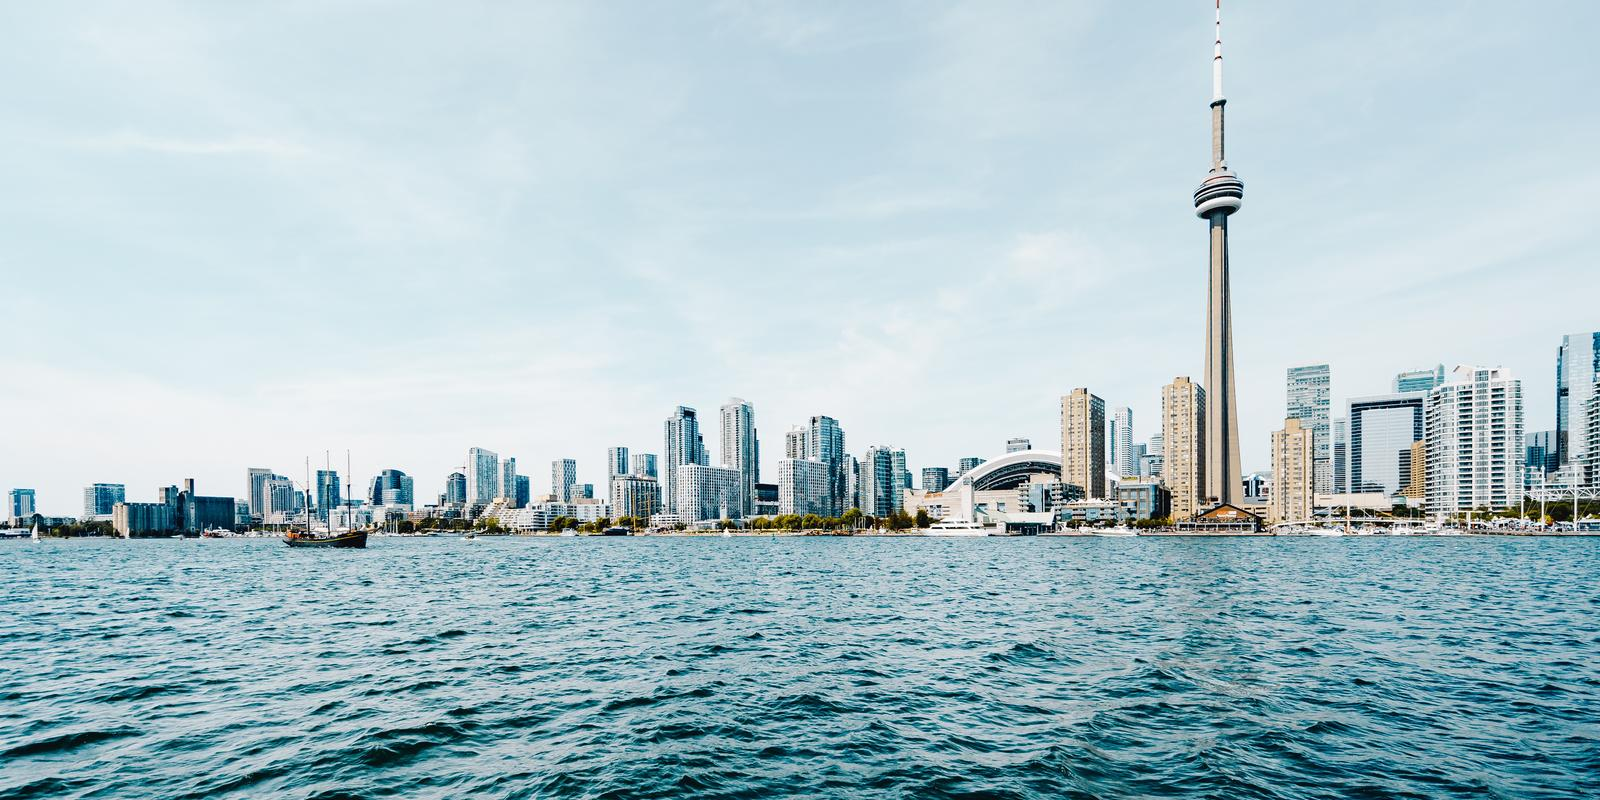 View from the water of the Toronto Skyline including the CN TTower